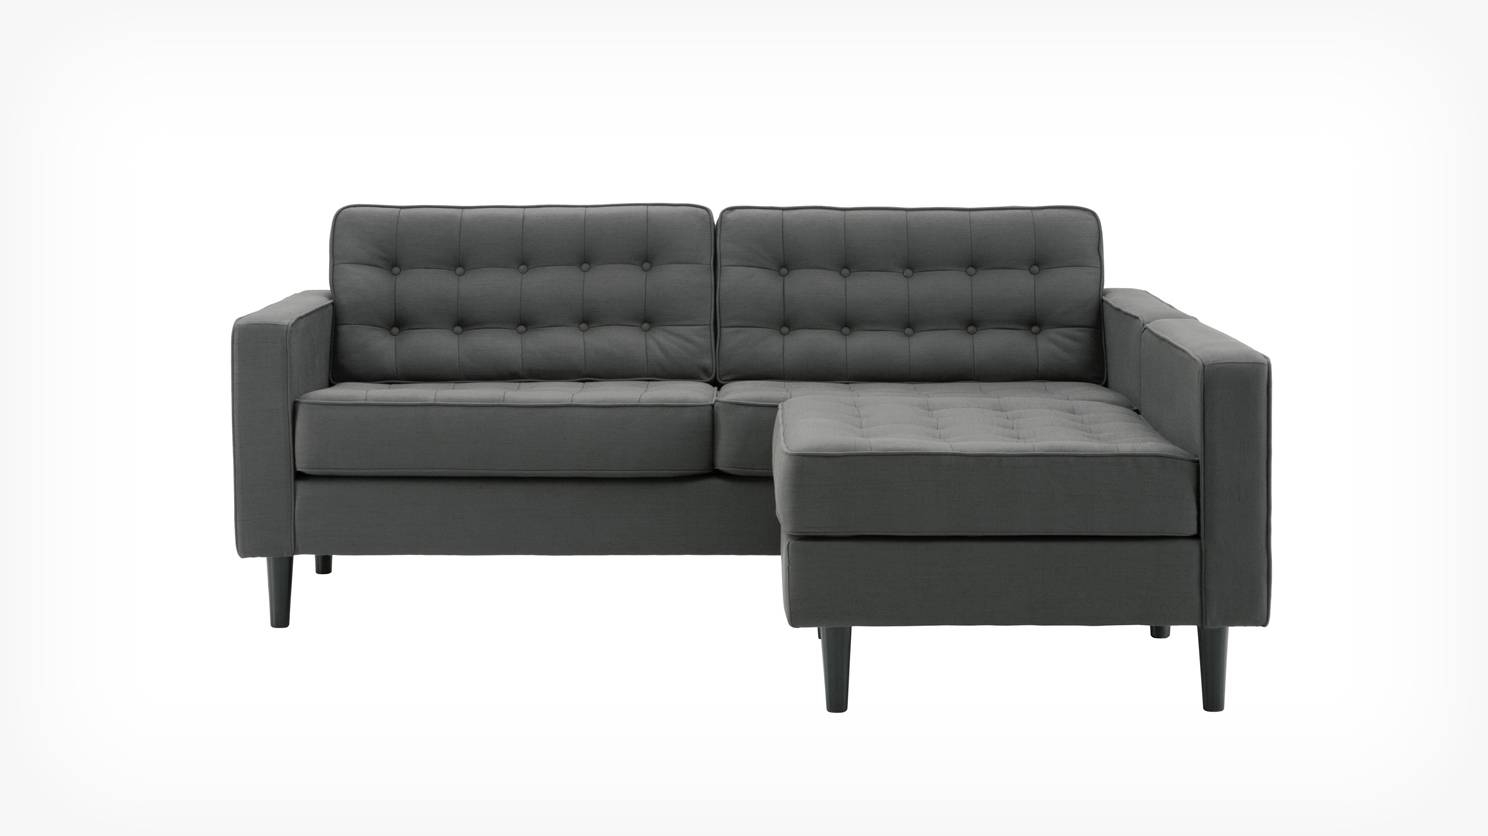 Eq3 | Reverie Apartment 2 Piece Sectional Sofa With Chaise – Fabric In Apartment Sofa Sectional (Image 15 of 30)